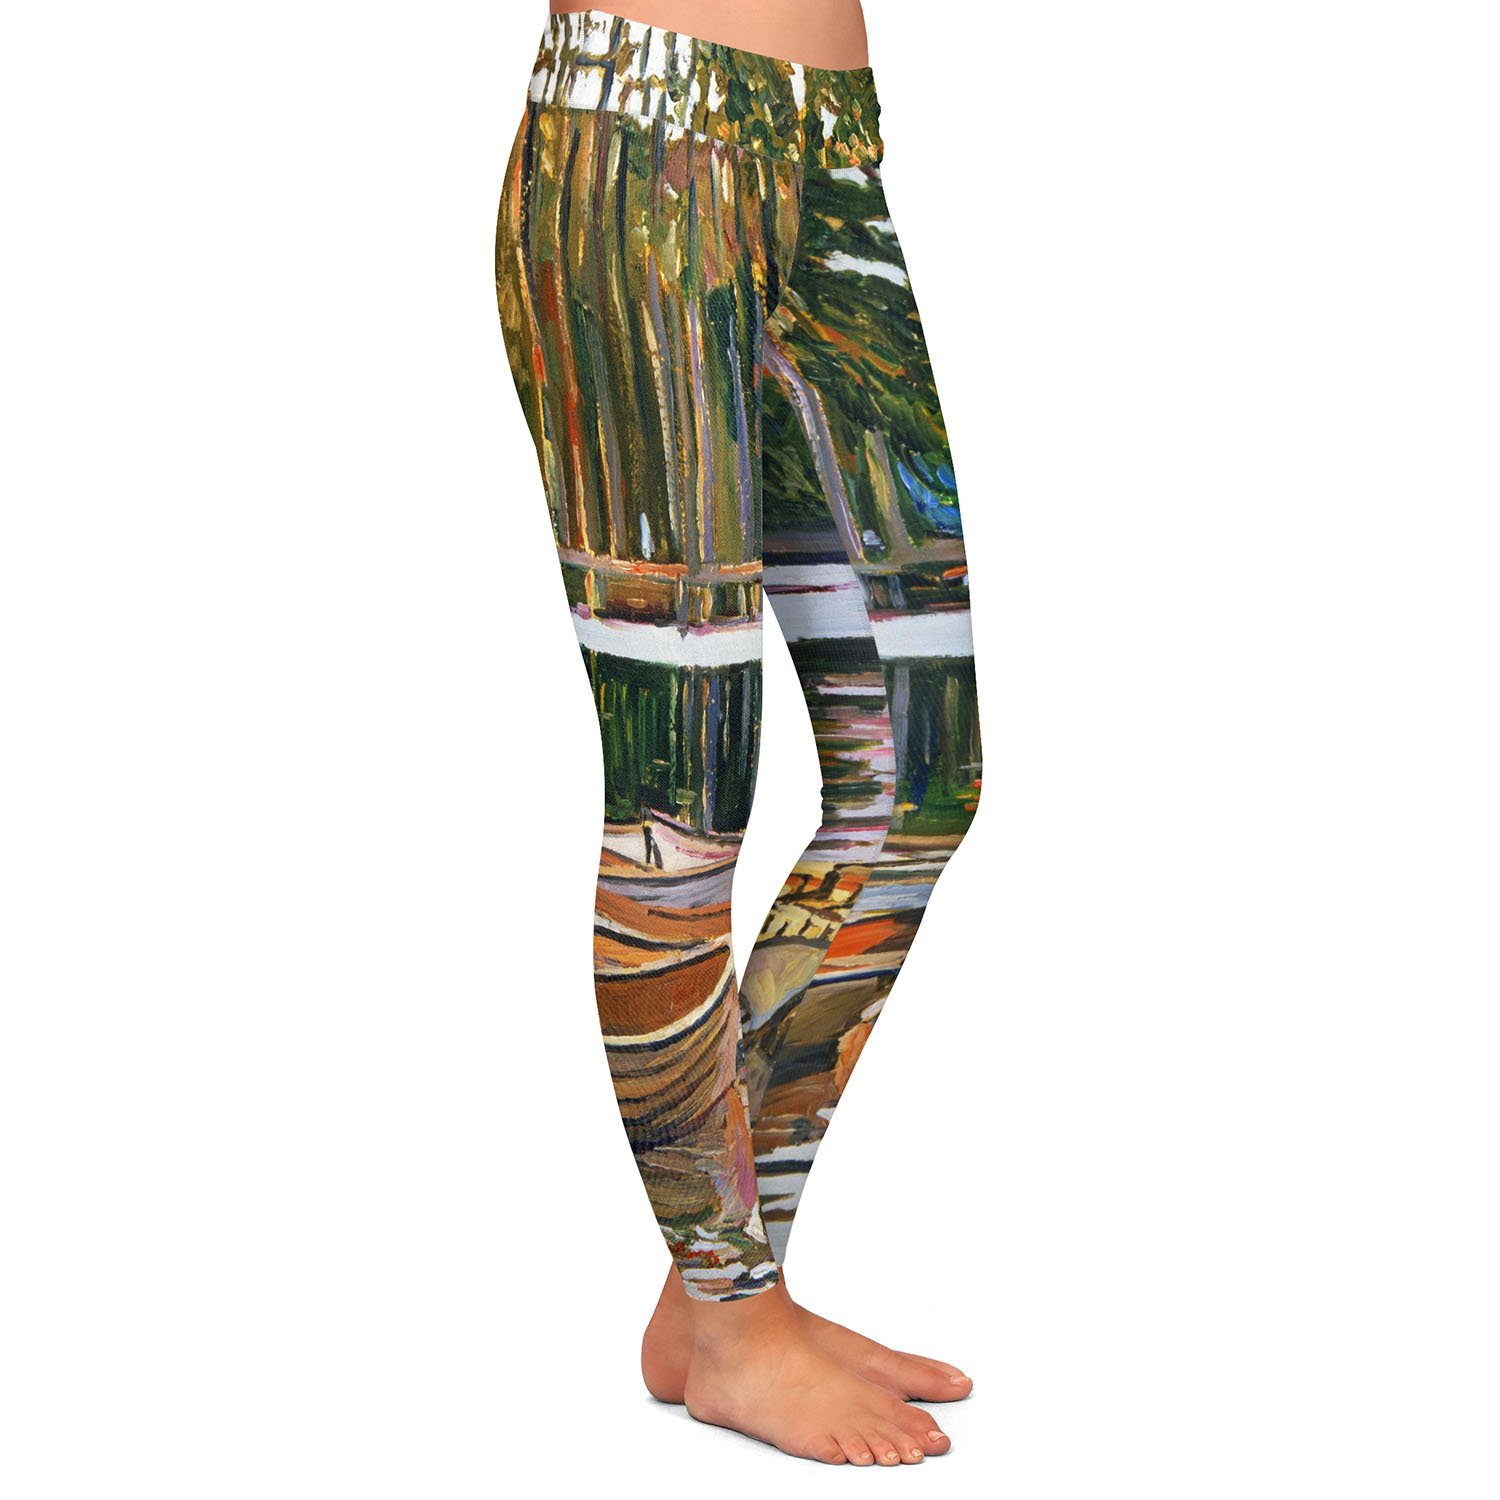 Athletic Yoga Leggings from DiaNoche Designs by David Lloyd Glover Lake Boats Paris